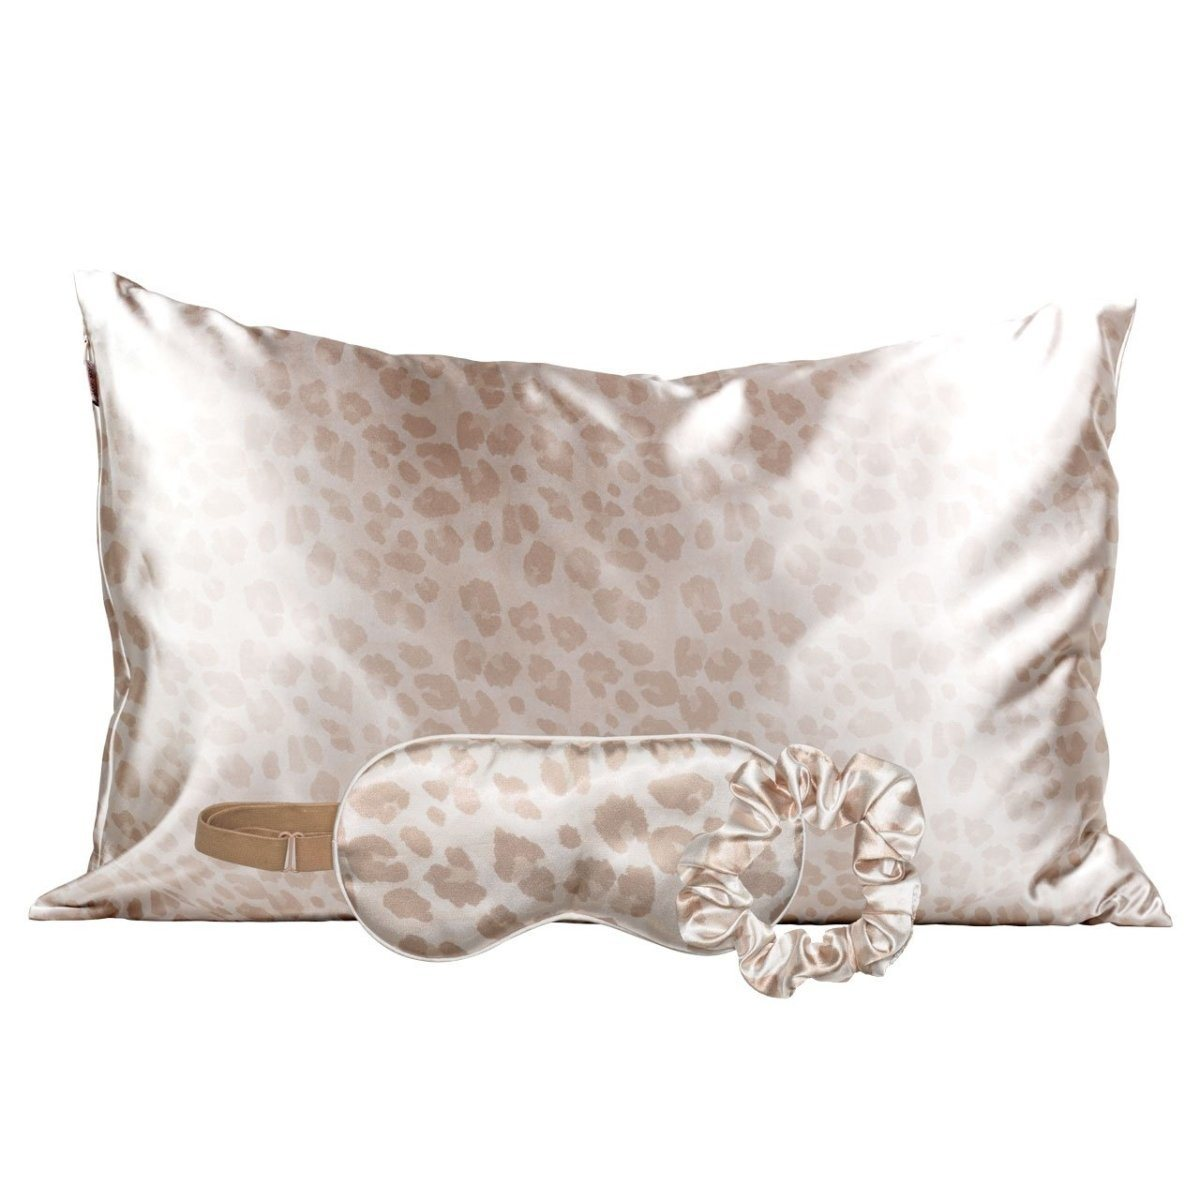 Satin Sleep Set in Leopard